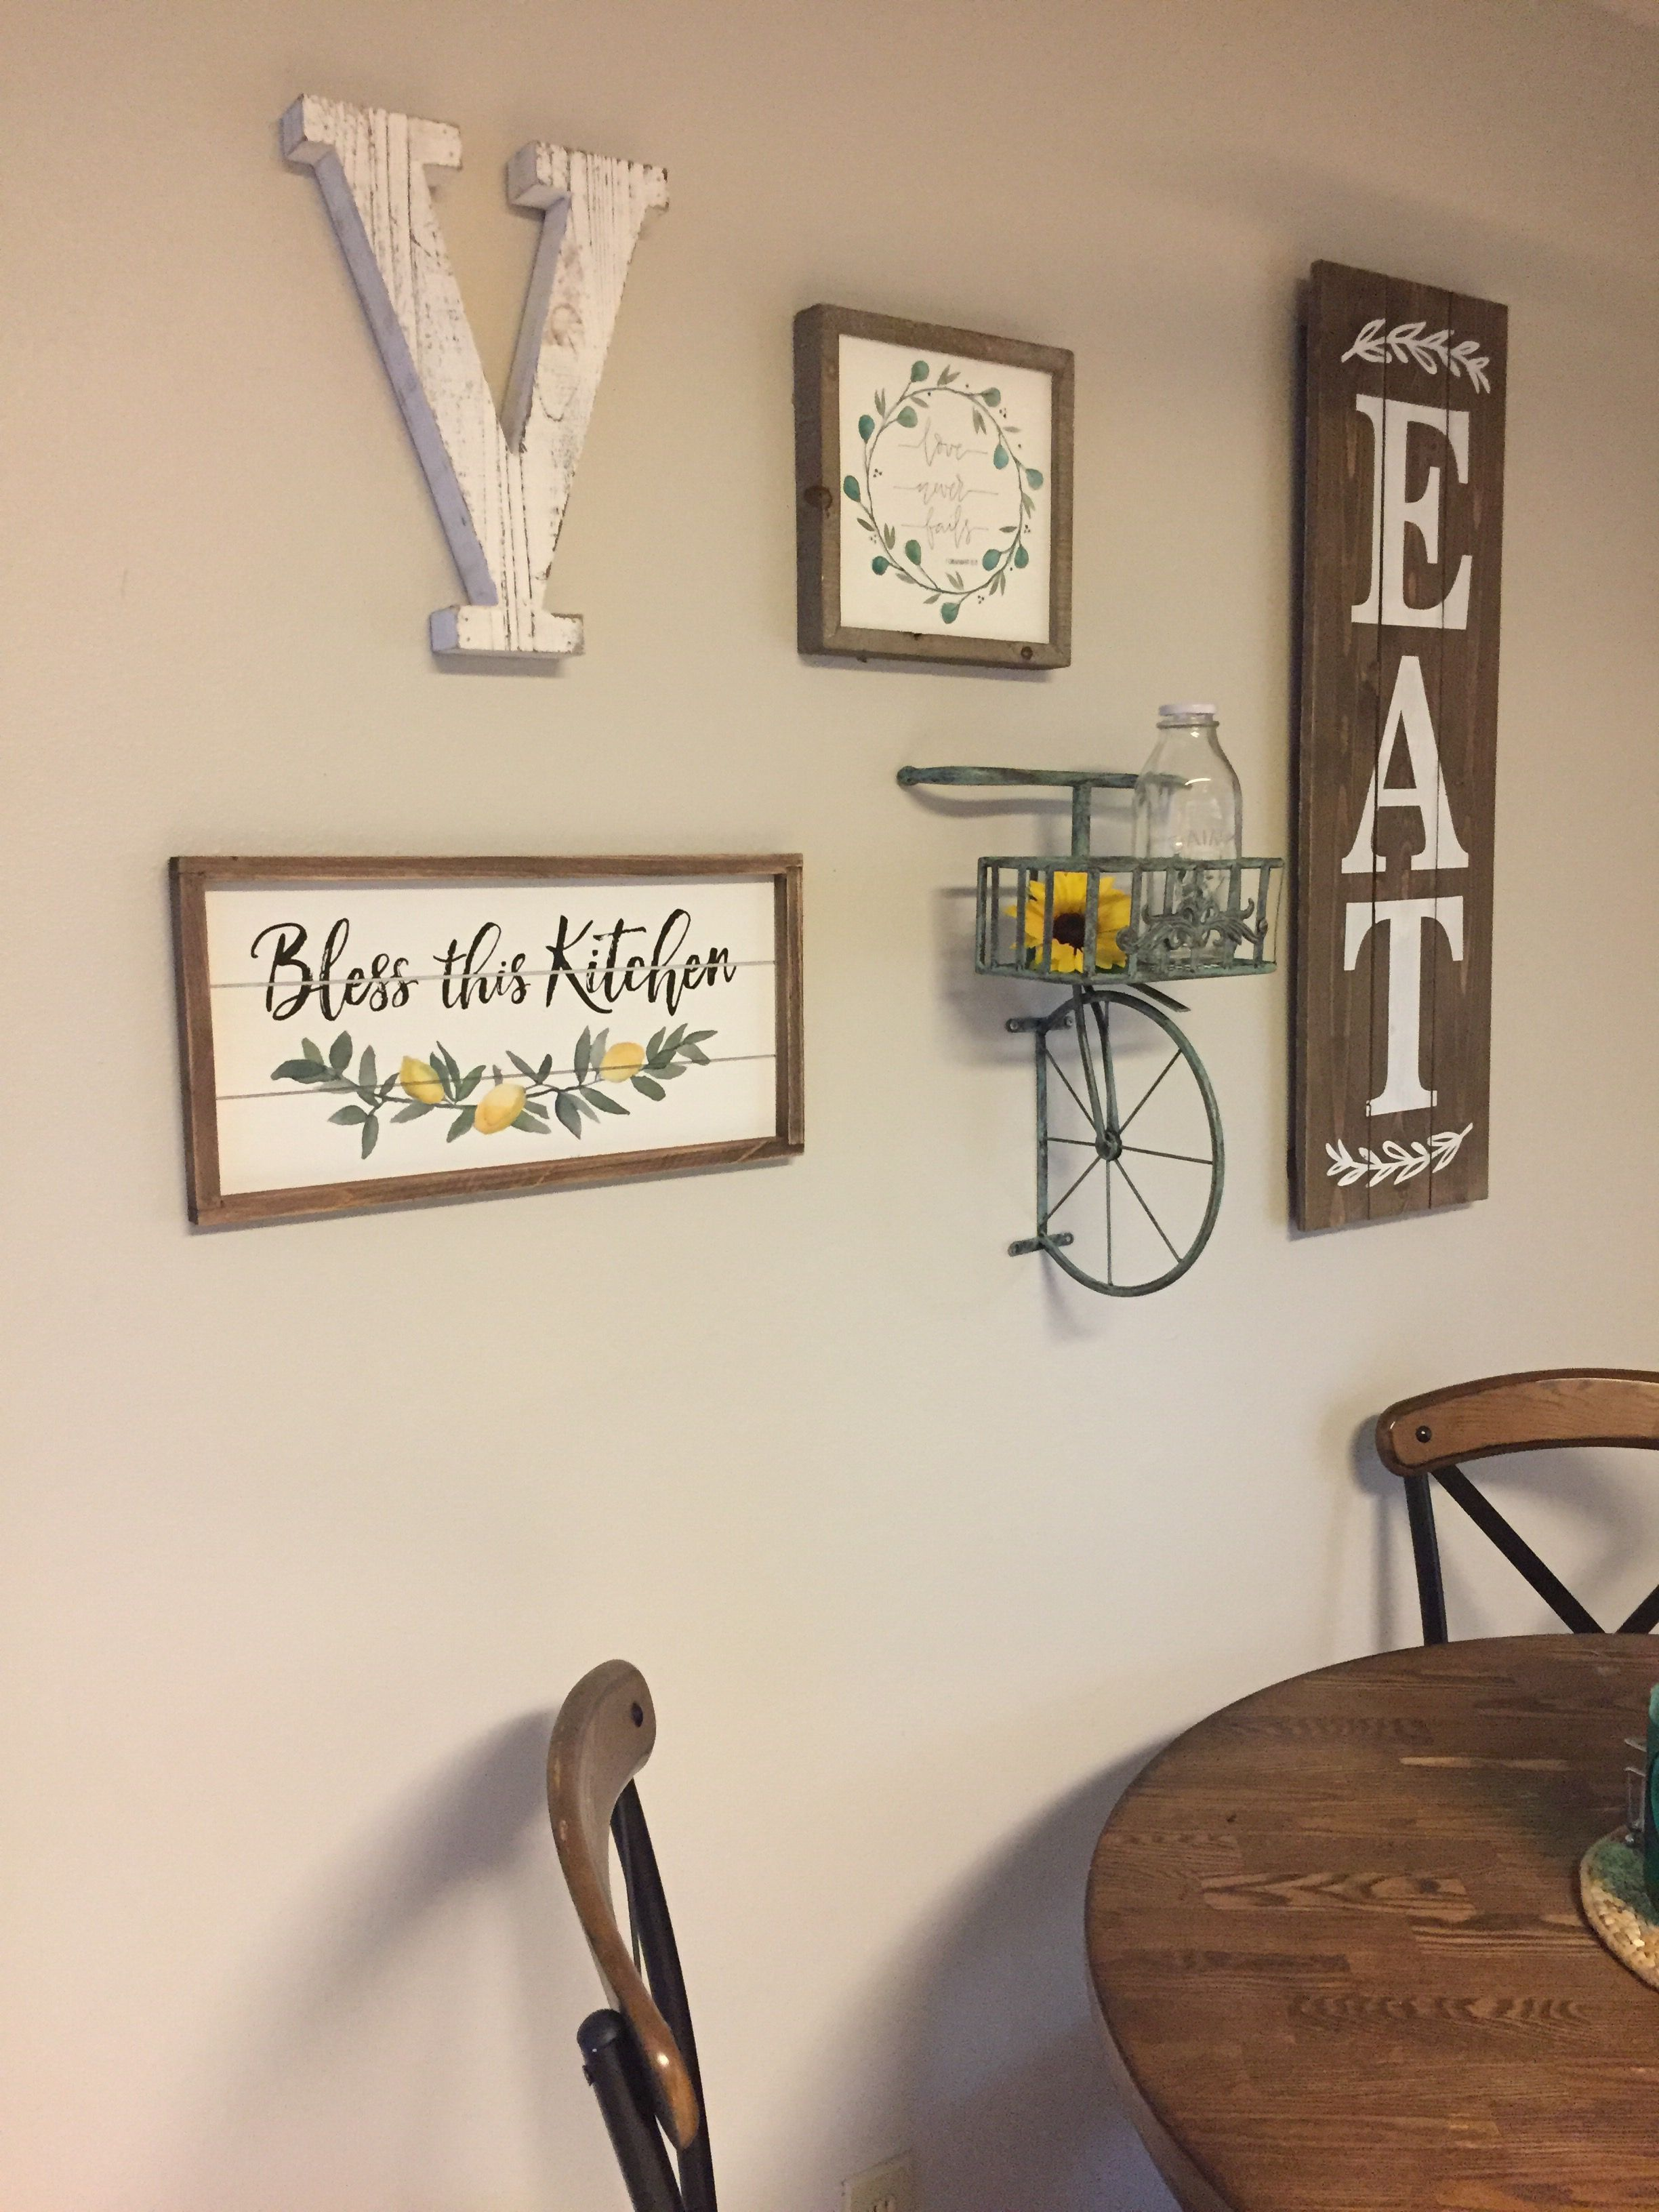 Kitchen wall Decor All from hobby lobby # ... on Hobby Lobby Outdoor Wall Decor Metal id=17639